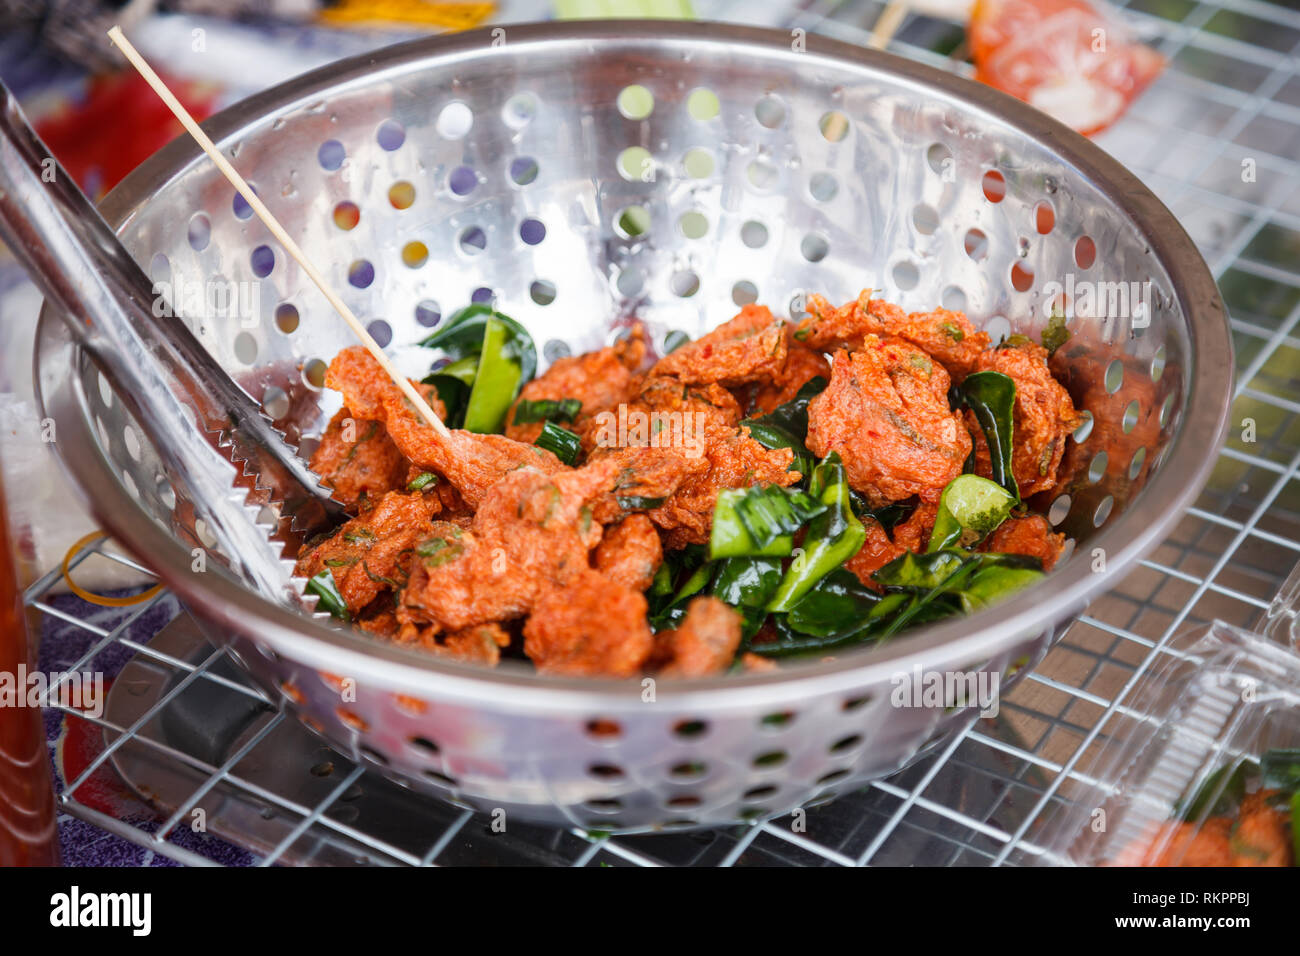 Tod Mun Pla Krai, Thai Deep Fried curried clown knifefish cake with crispy crunchy fried holy basil leaves and sweet cucumber and coriander dipping sa - Stock Image